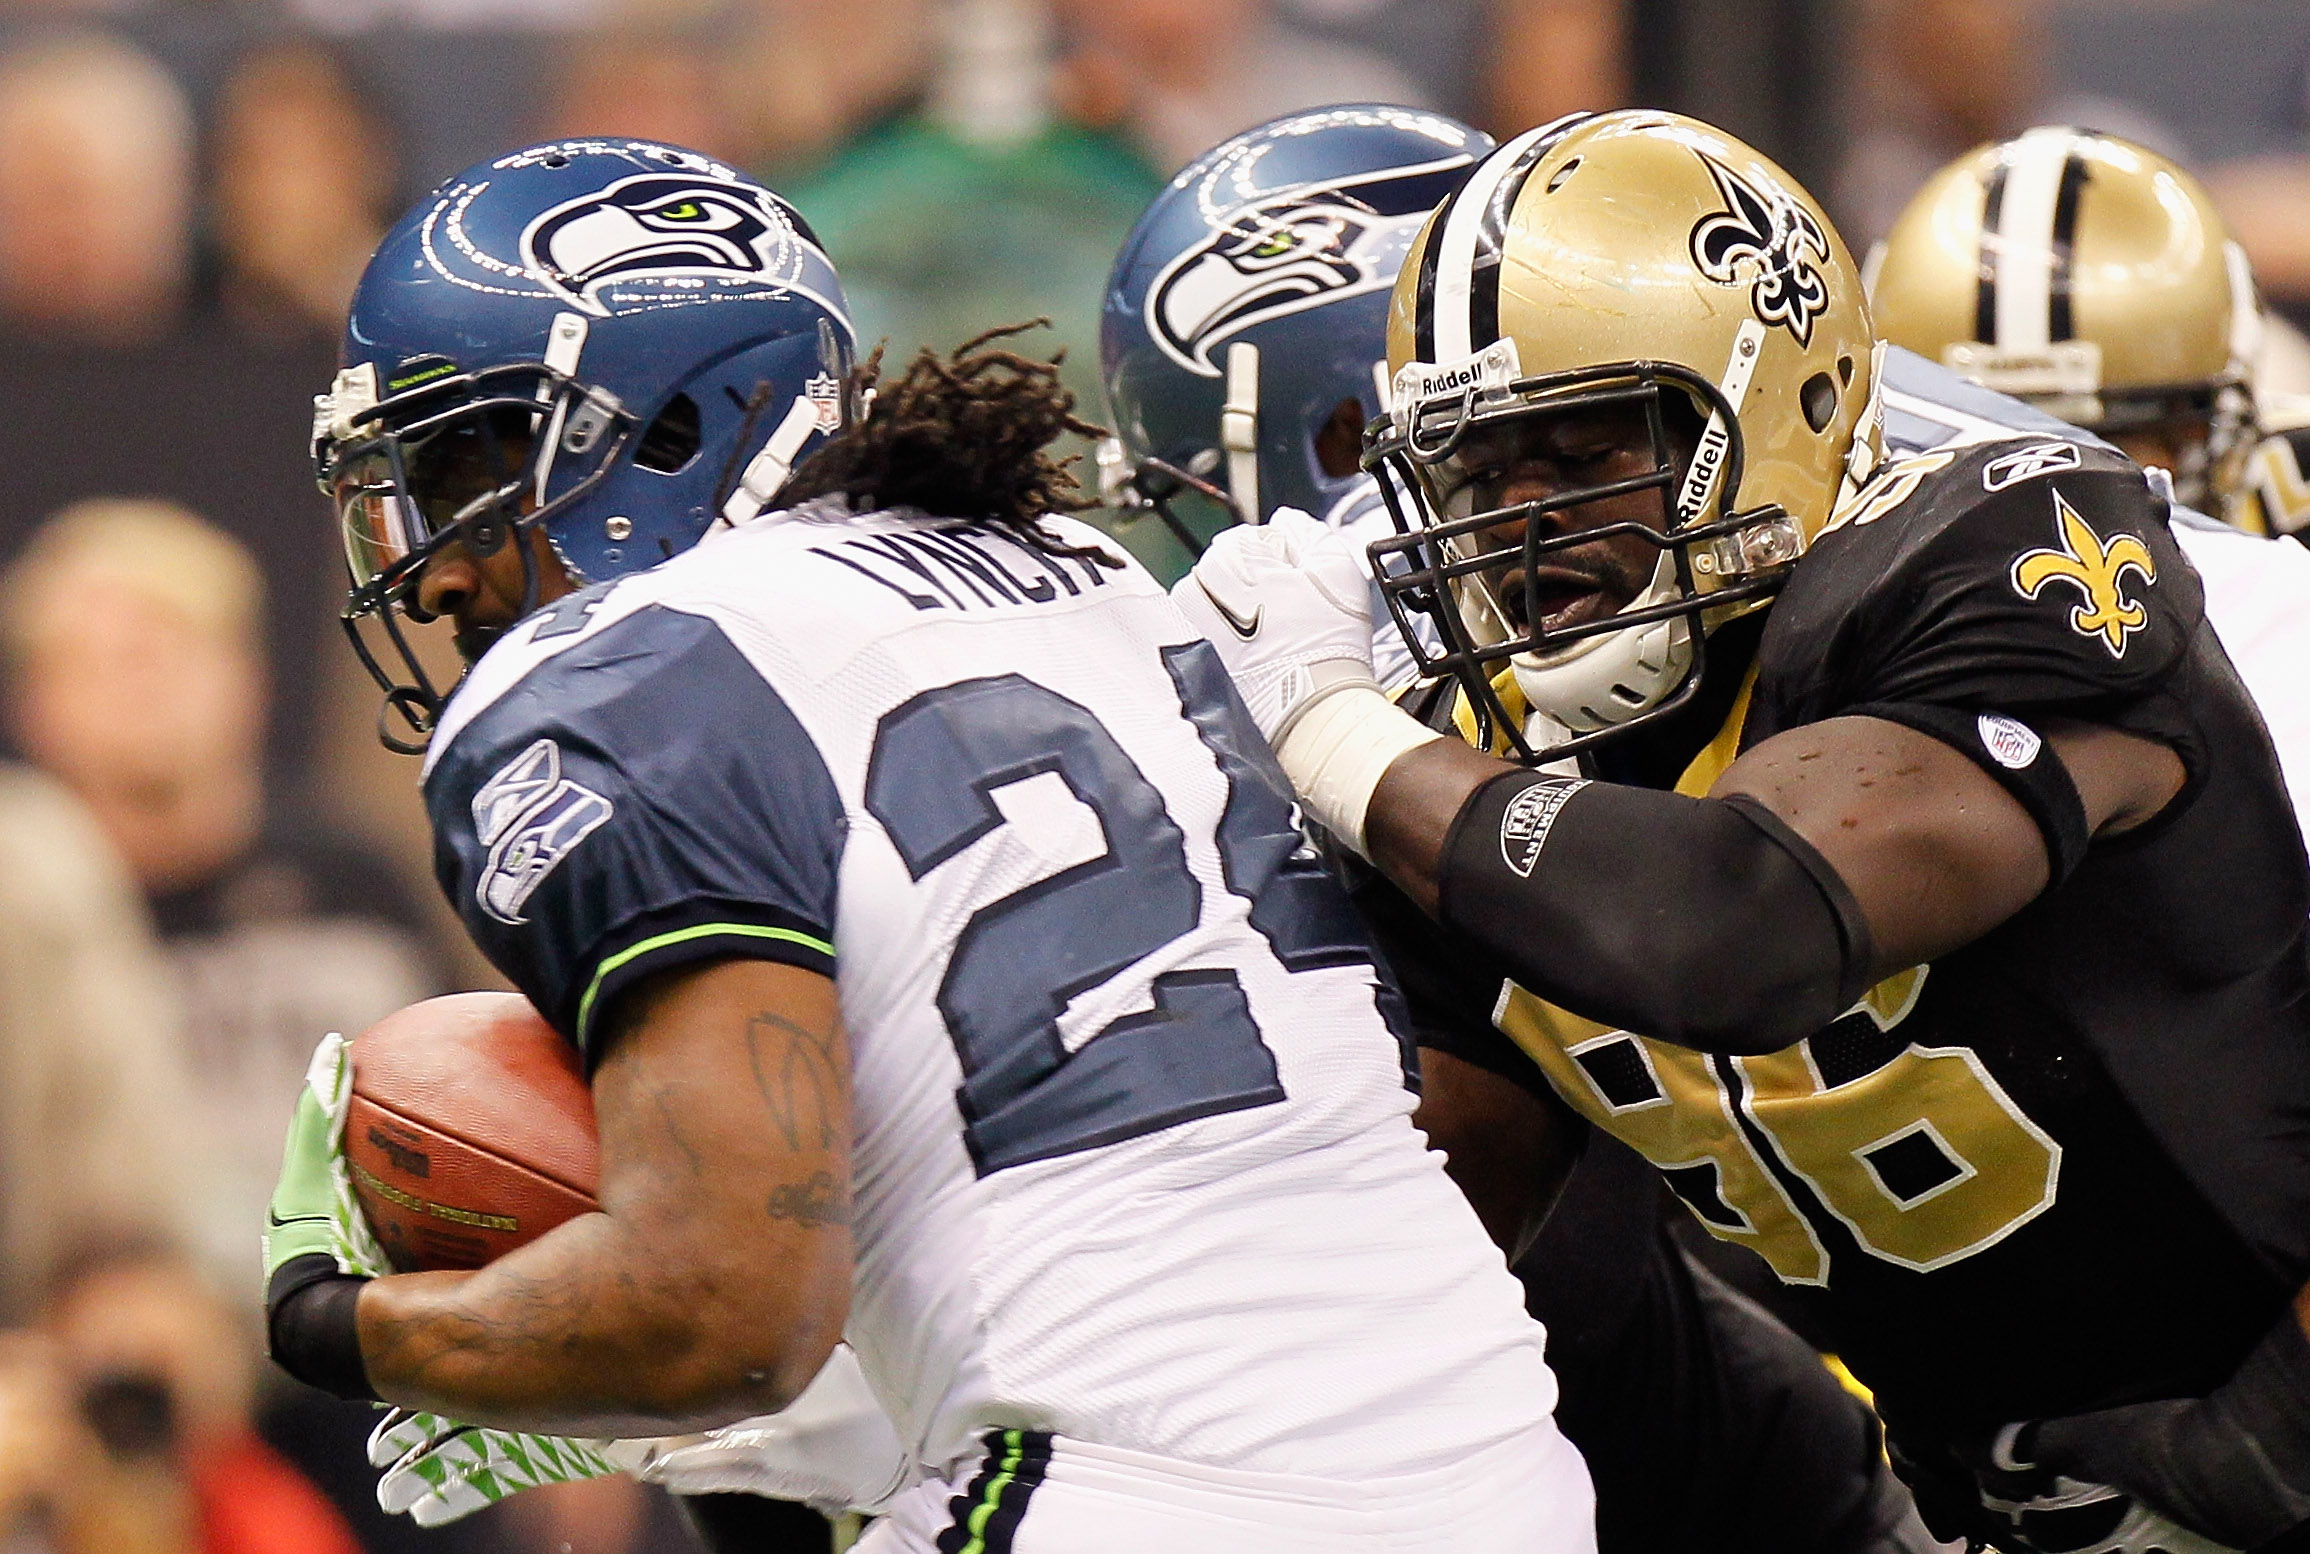 NEW ORLEANS - NOVEMBER 21:  Marshawn Lynch #24 of the Seattle Seahawks against Alex Brown #96 of the New Orleans Saints at Louisiana Superdome on November 21, 2010 in New Orleans, Louisiana.  (Photo by Kevin C. Cox/Getty Images)